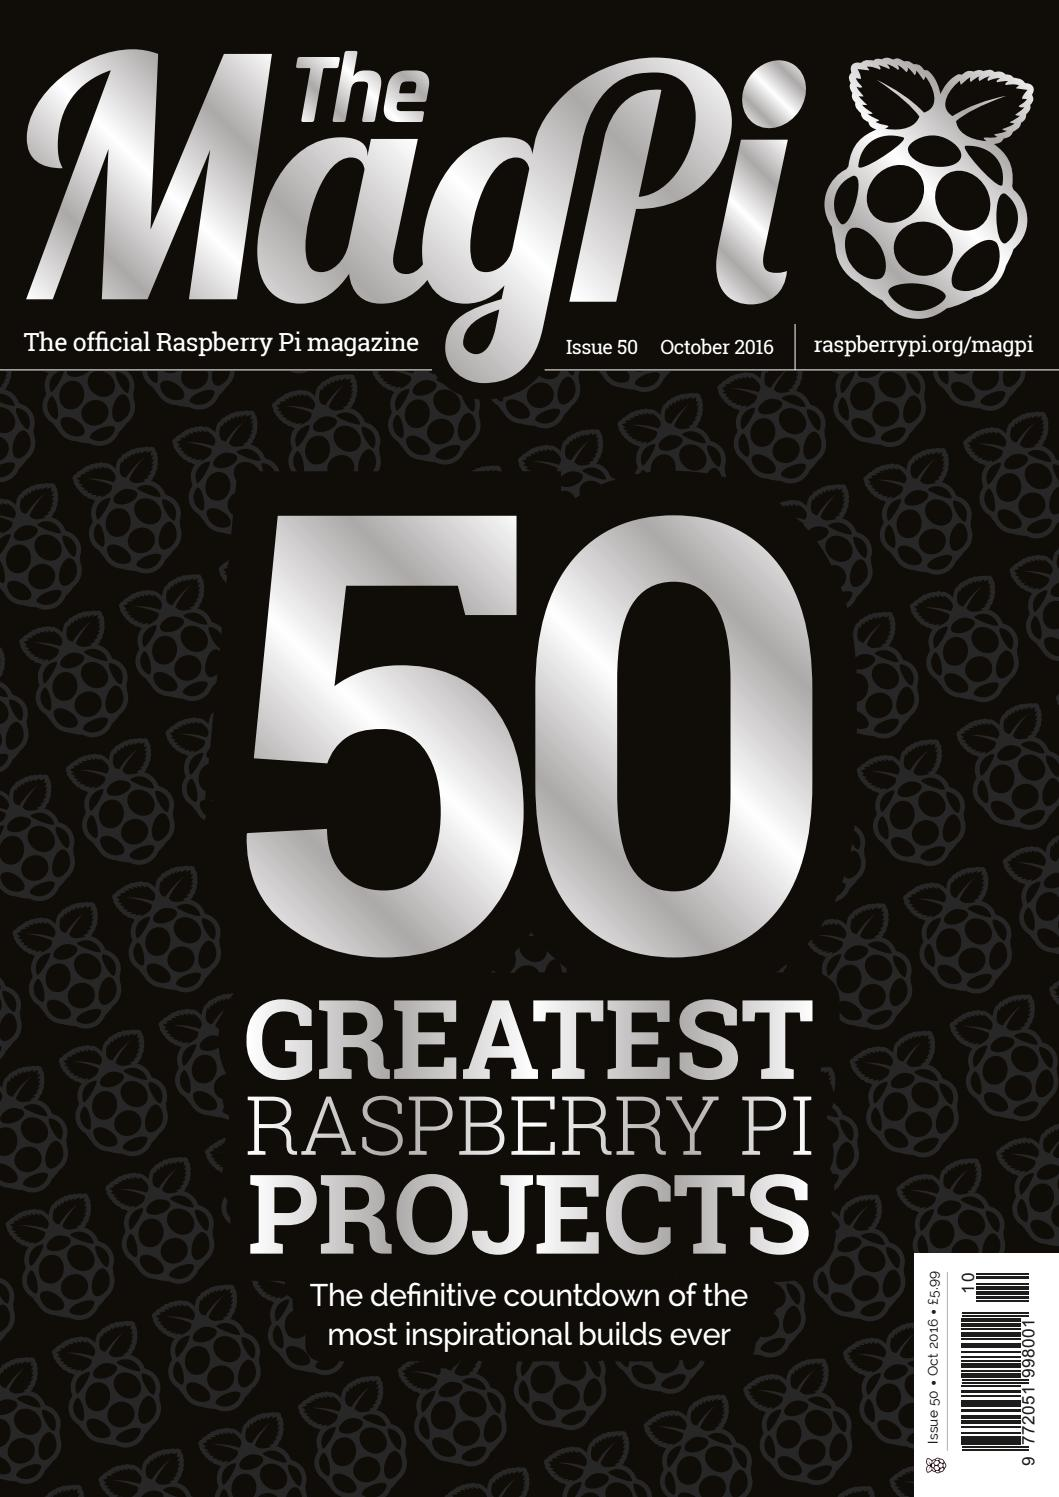 The magpi issue 50 en by csaba bajusz - issuu